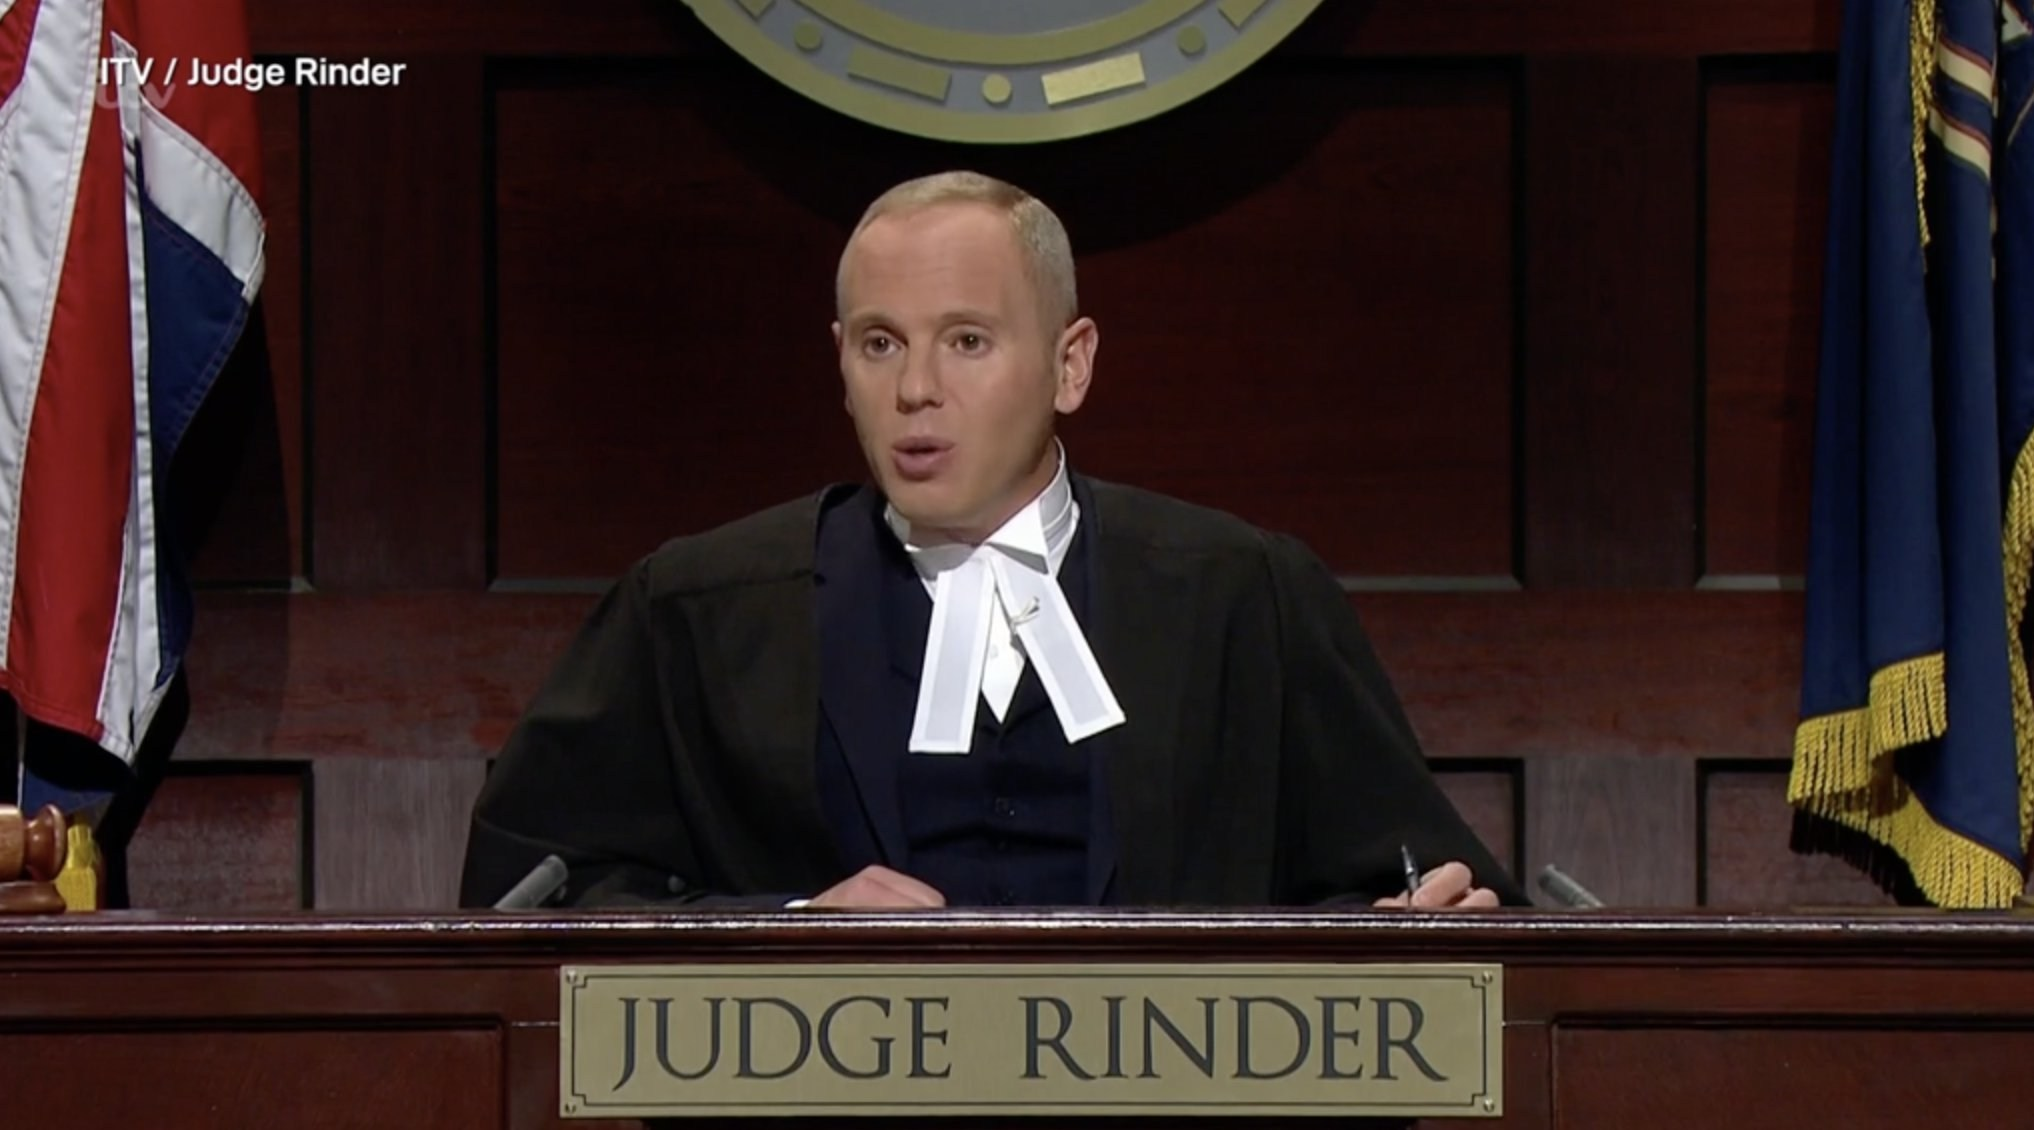 Is Judge Rinder a real judge?